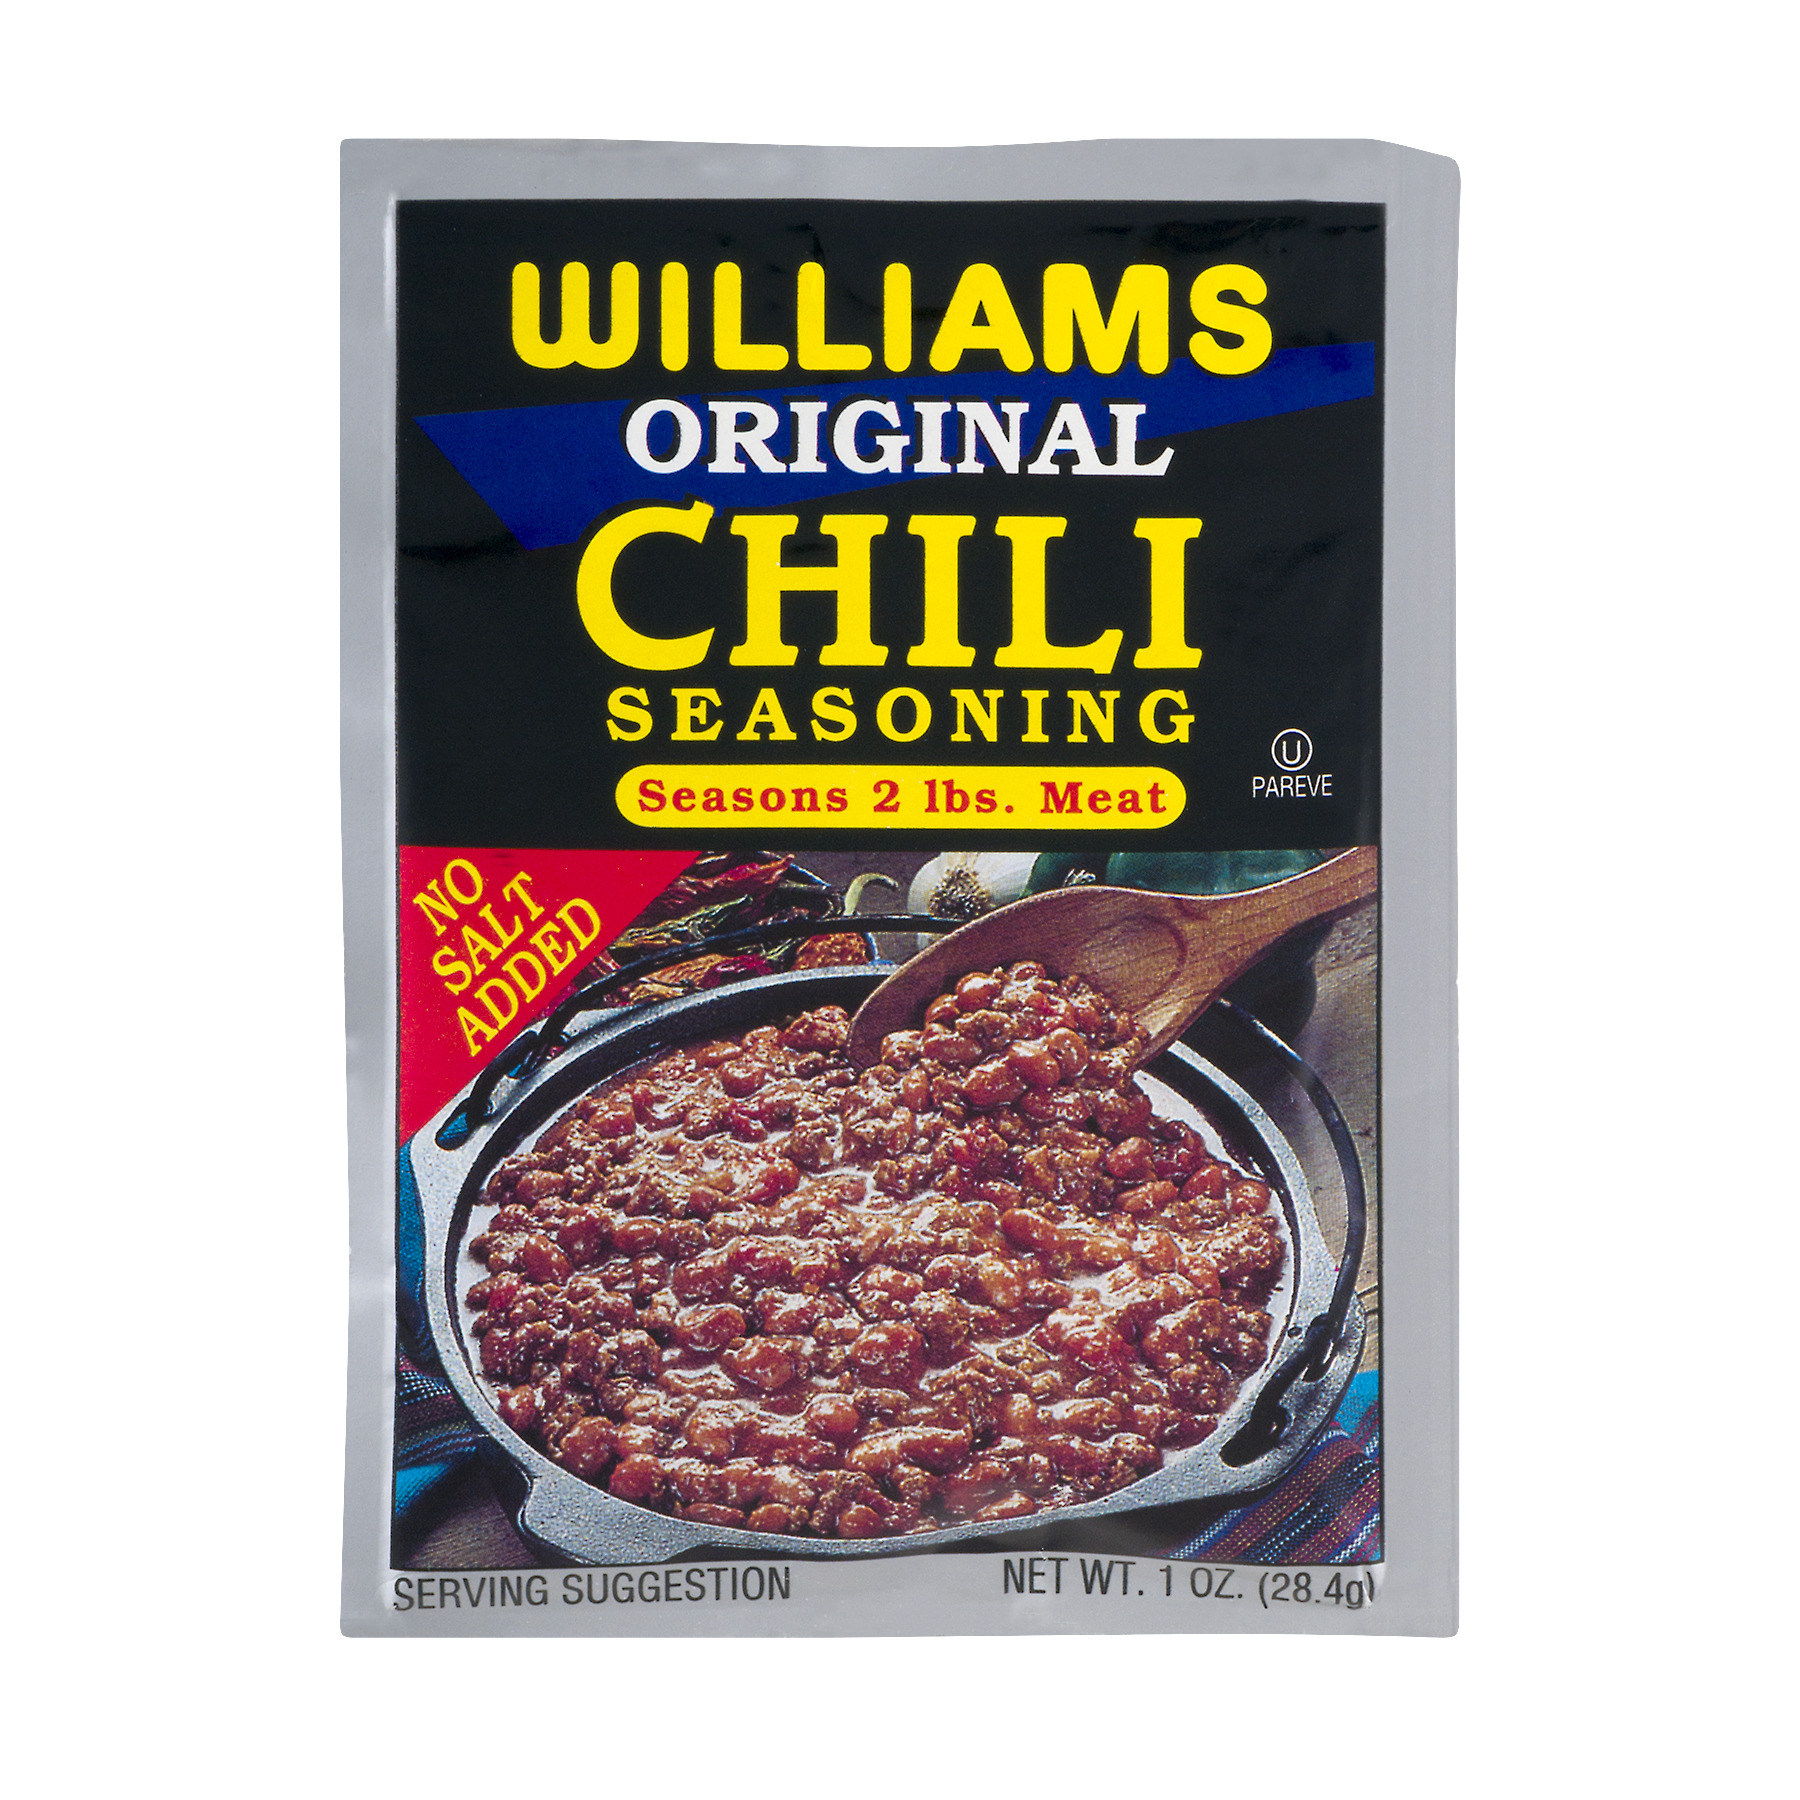 Williams Original Chili Seasoning 1 oz. Packet